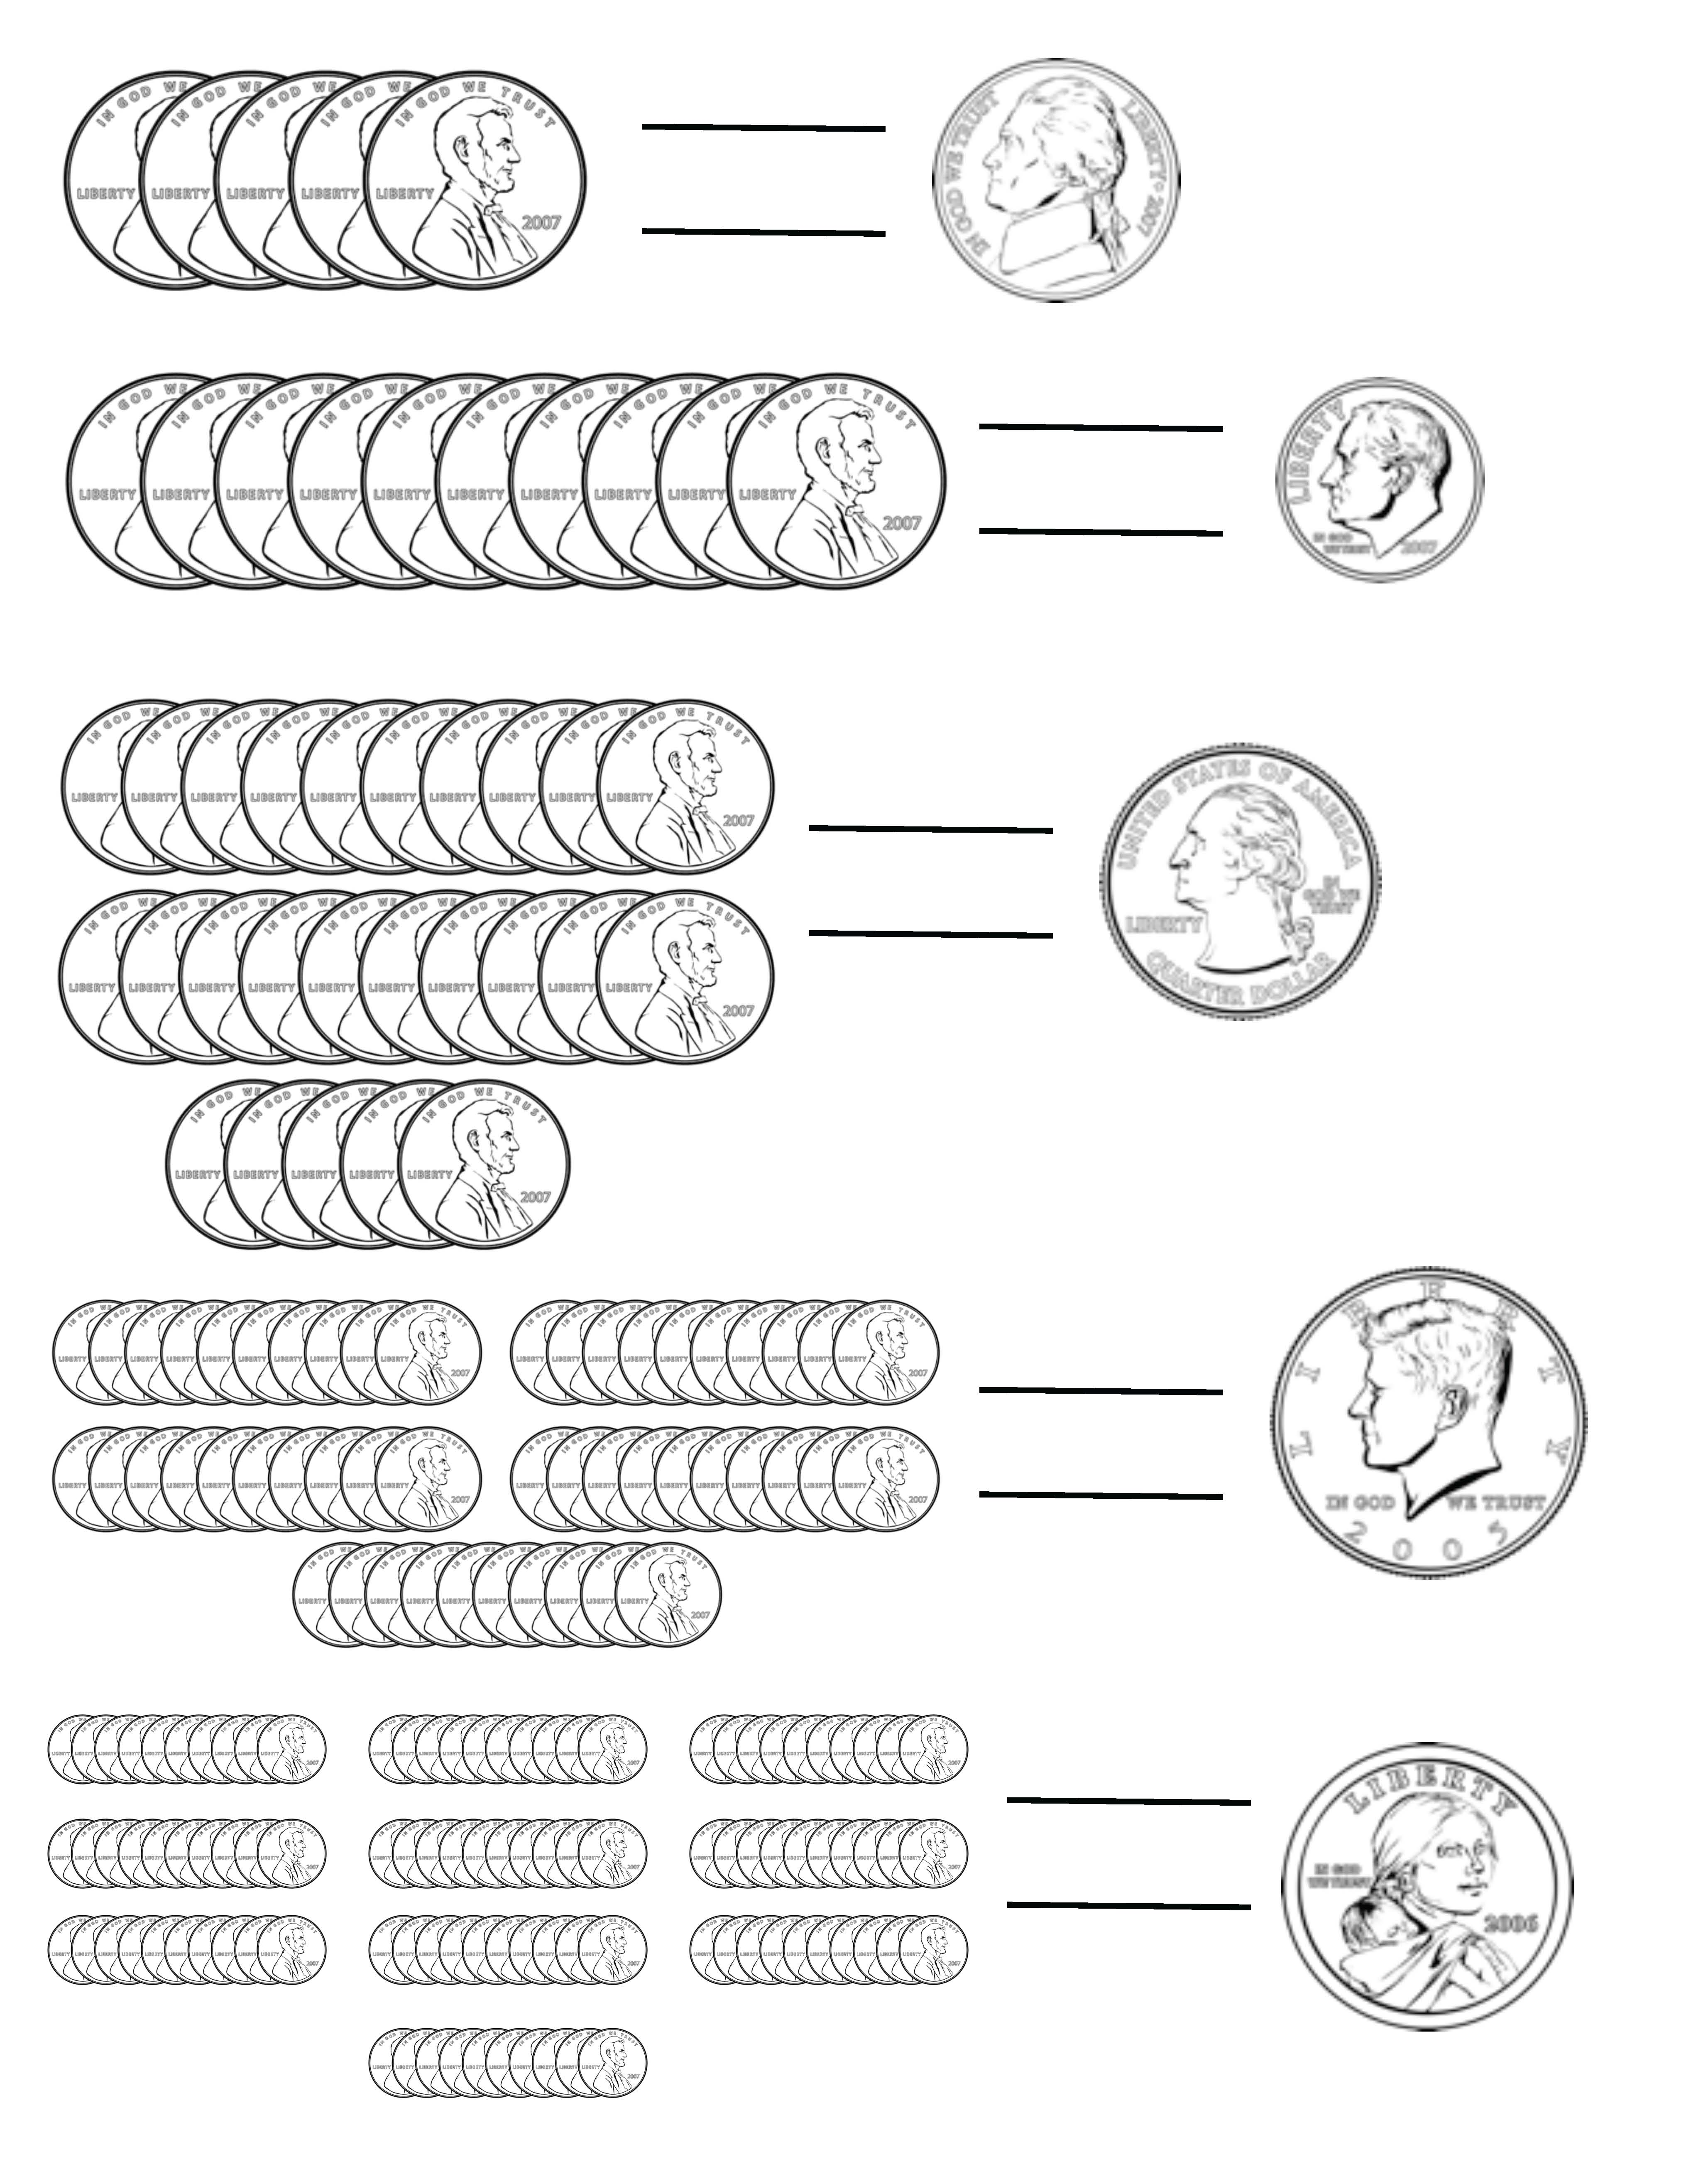 10 frames templates, coin puzzles, 10 frames activities, venn diagrams, venn diagram templates, coin venn diagrams, 10 frames with coins on them, 10 frame cards, ten frames templates, ten frames activities, coin activities, coin lessons, coin centers, coin worksheets, coin crafts, coin games, identifying coins, coin posters, coin songs, coin poems, file folder facts, file folder activities, file folder reports, dice games, math games, coin games, presidents day activities, paper coin templates, coin crafts,